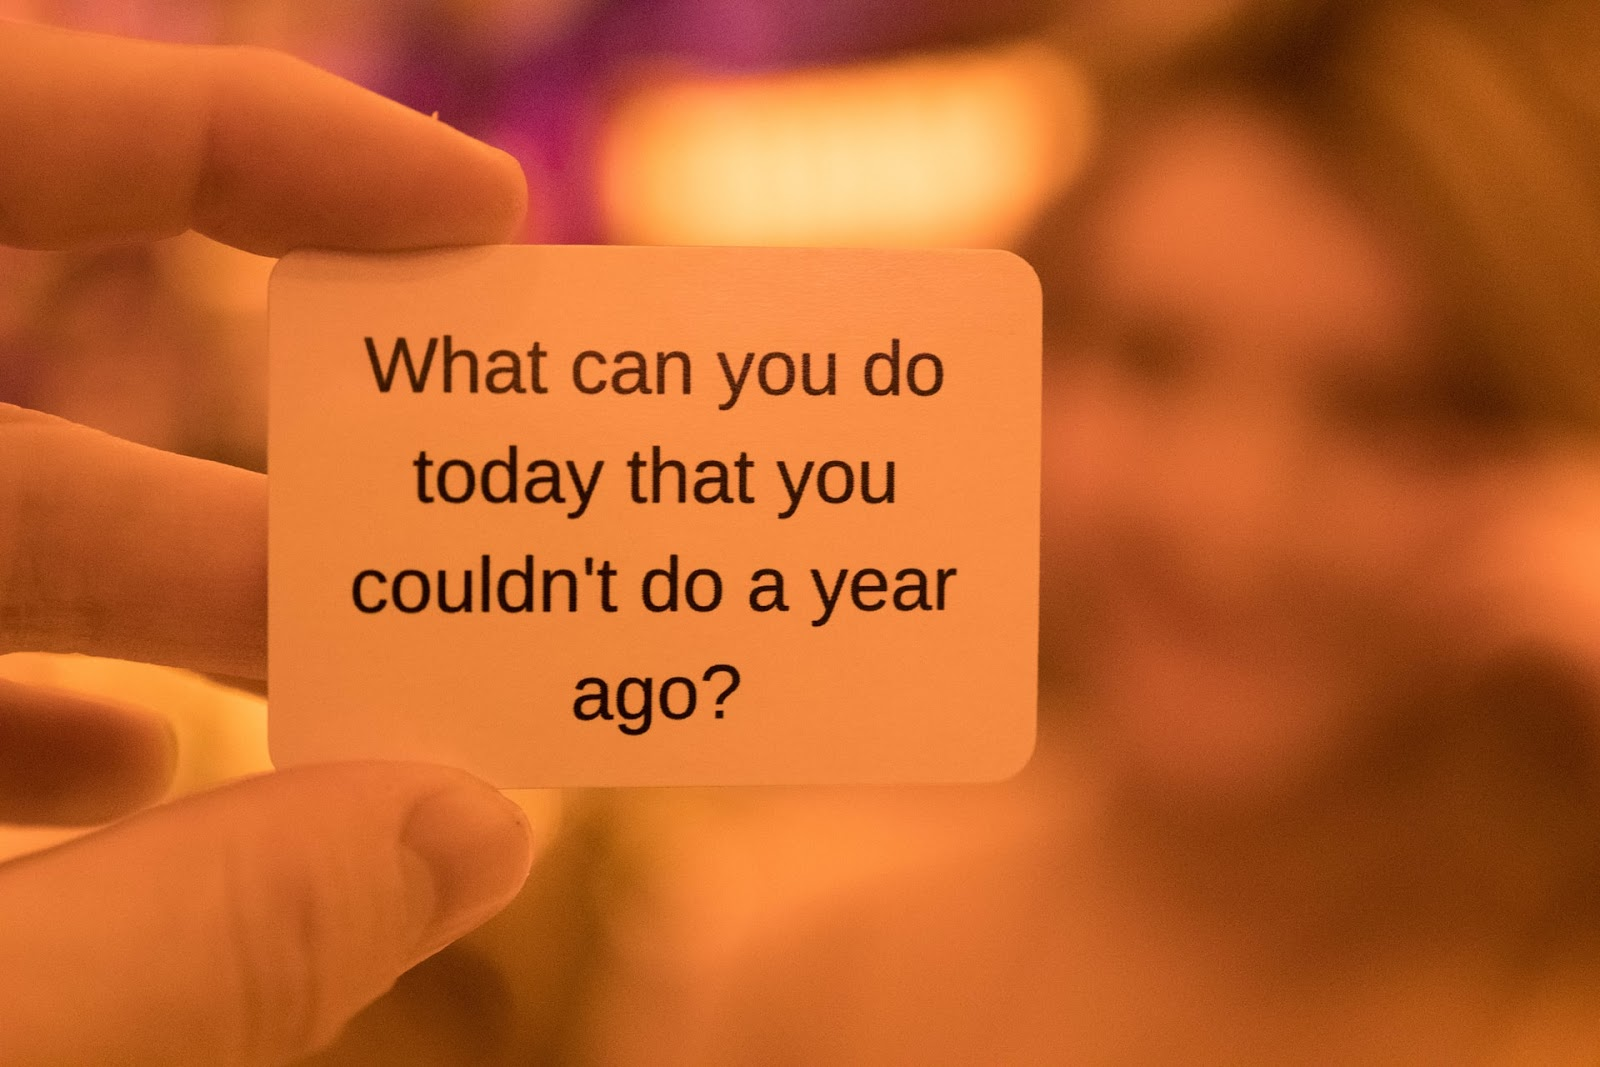 What can you do today that you couldn't do a year ago?